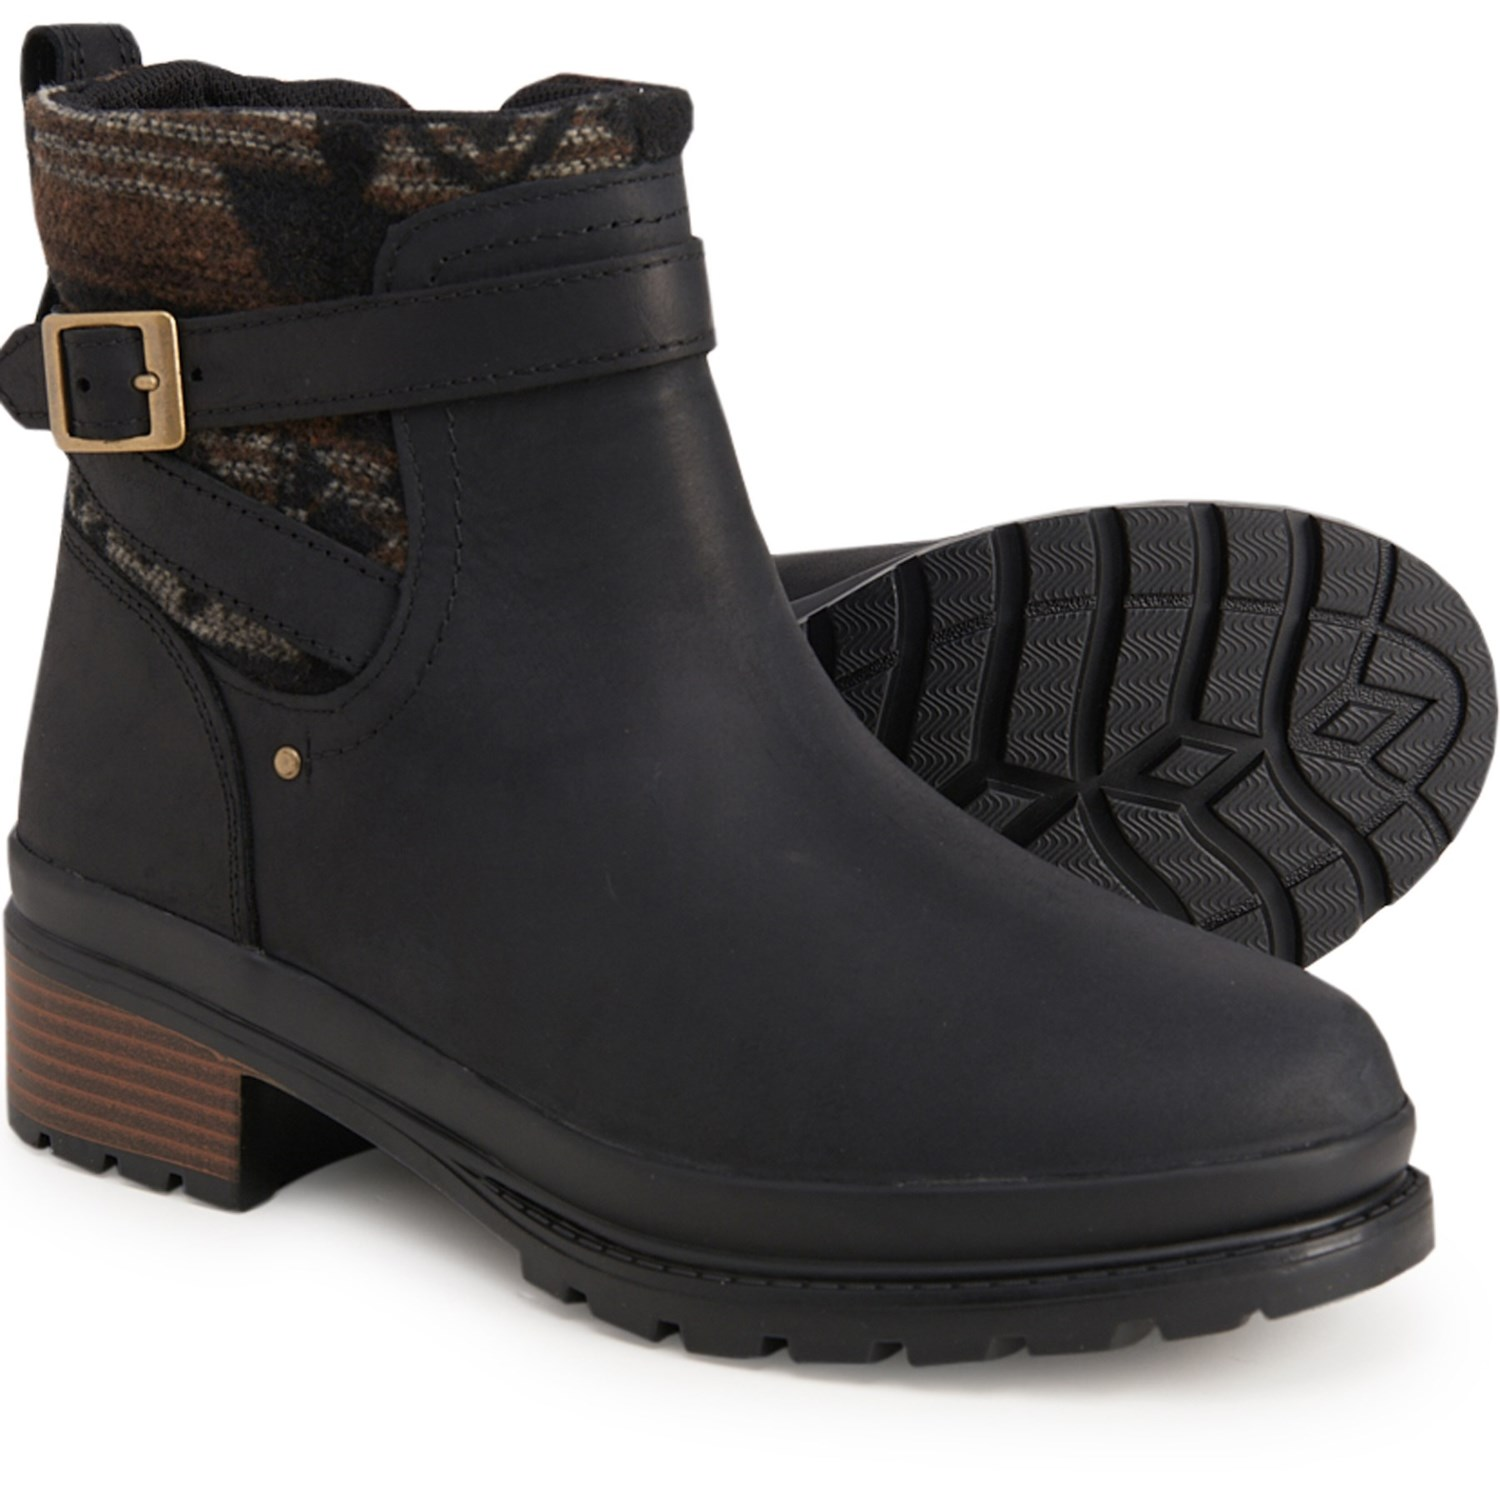 Muck Boot Company Liberty Ankle Boots